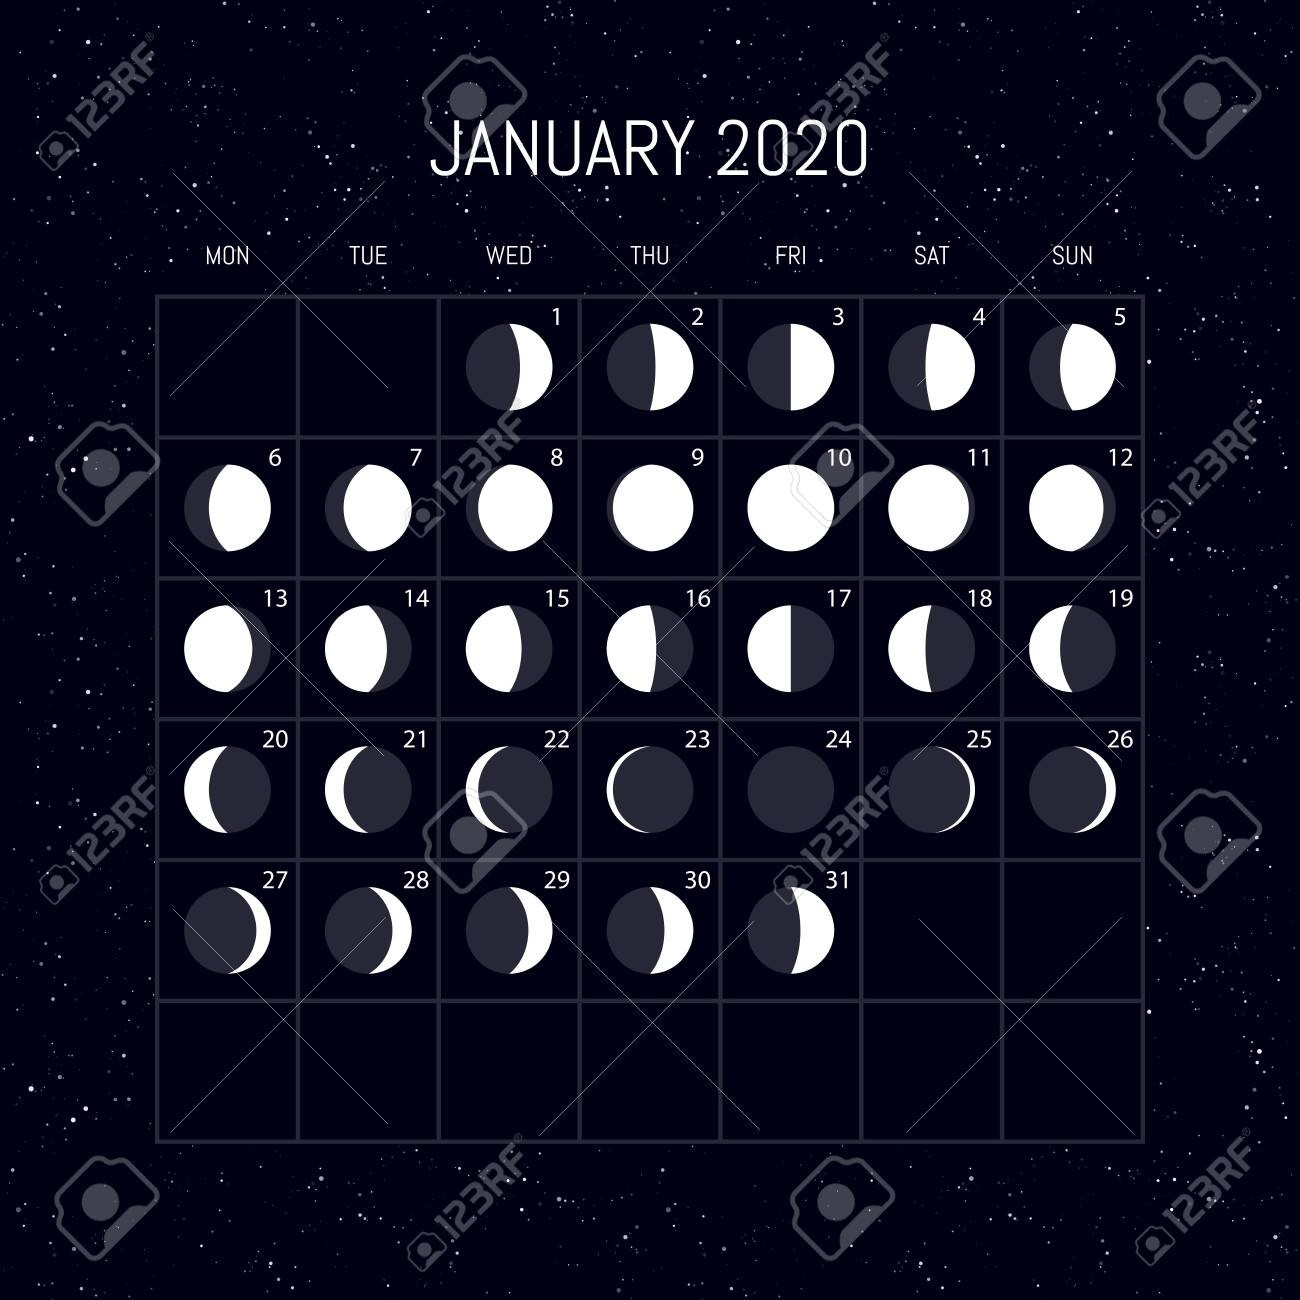 Moon Phases Calendar For 2020 Year. January. Night Background..-January 2020 Calendar With Moon Phases